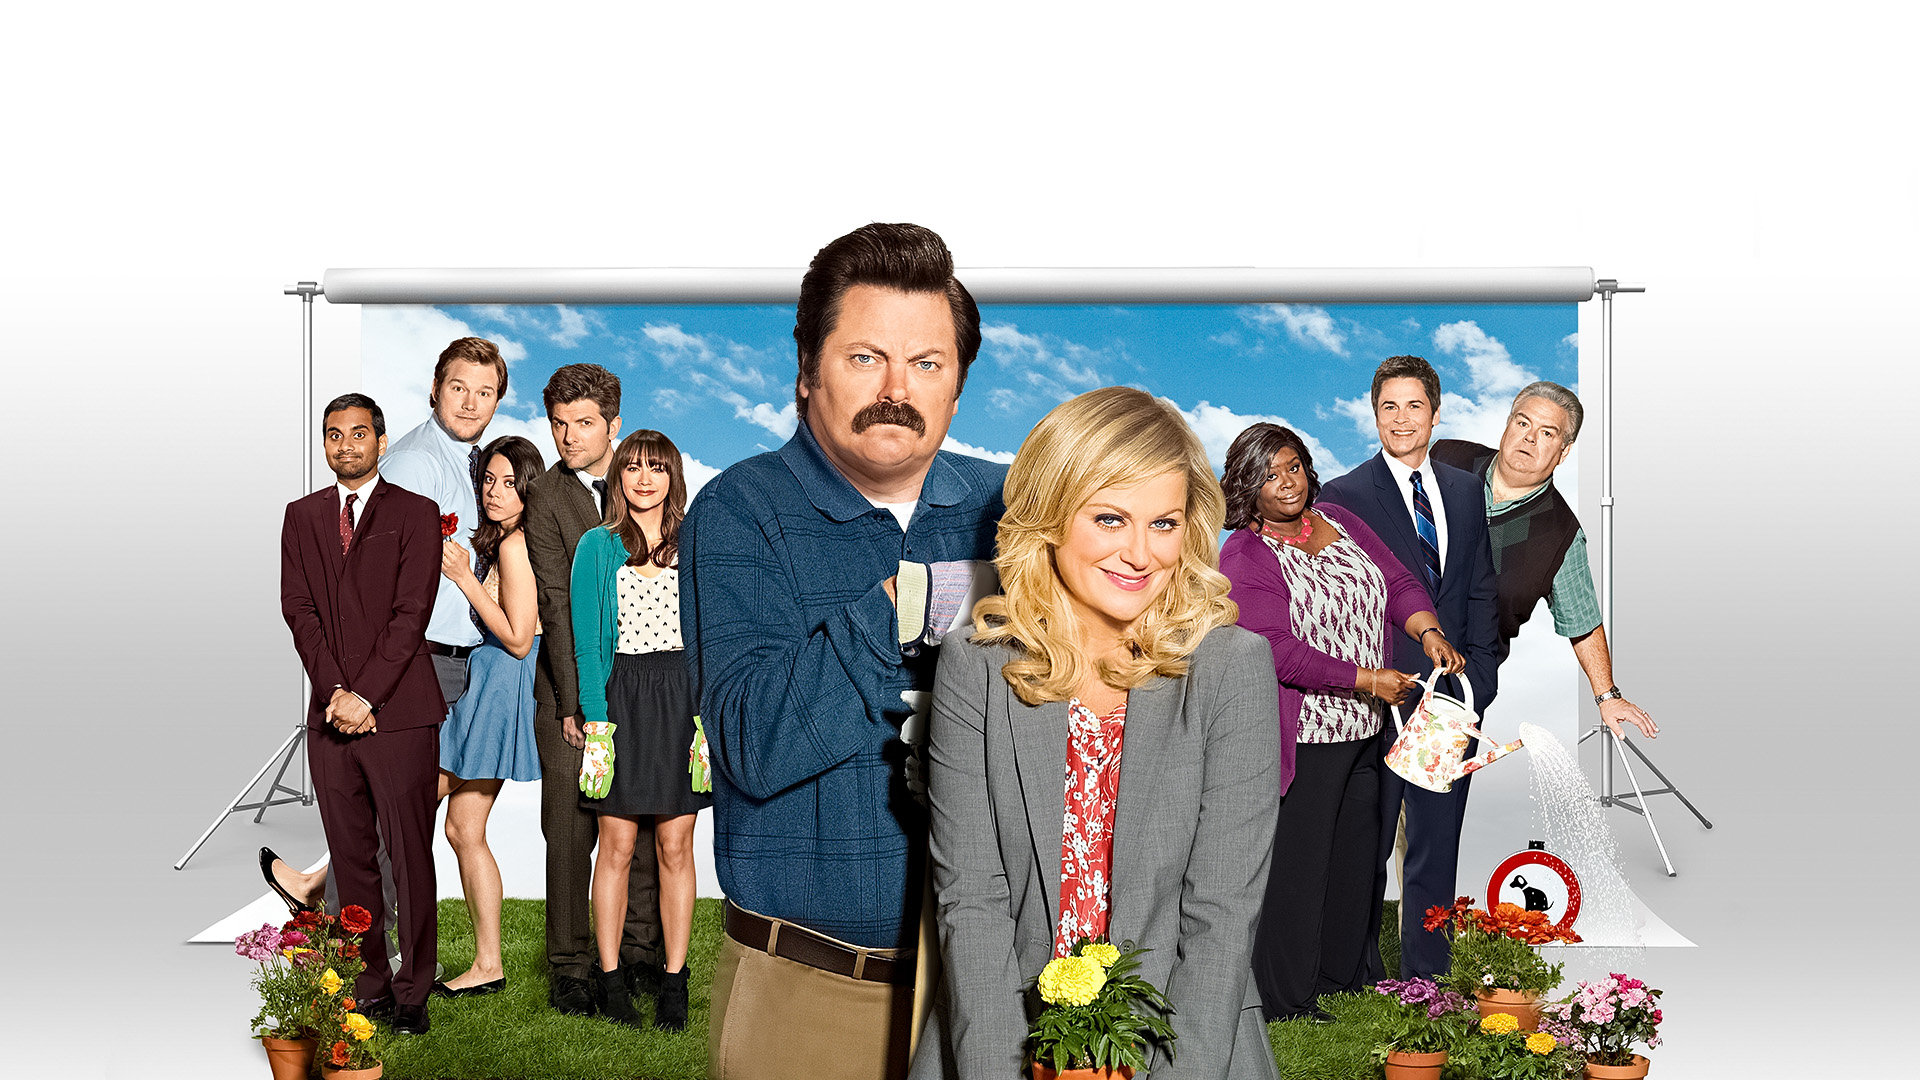 Parks And Recreation Wallpapers Hd For Desktop Backgrounds